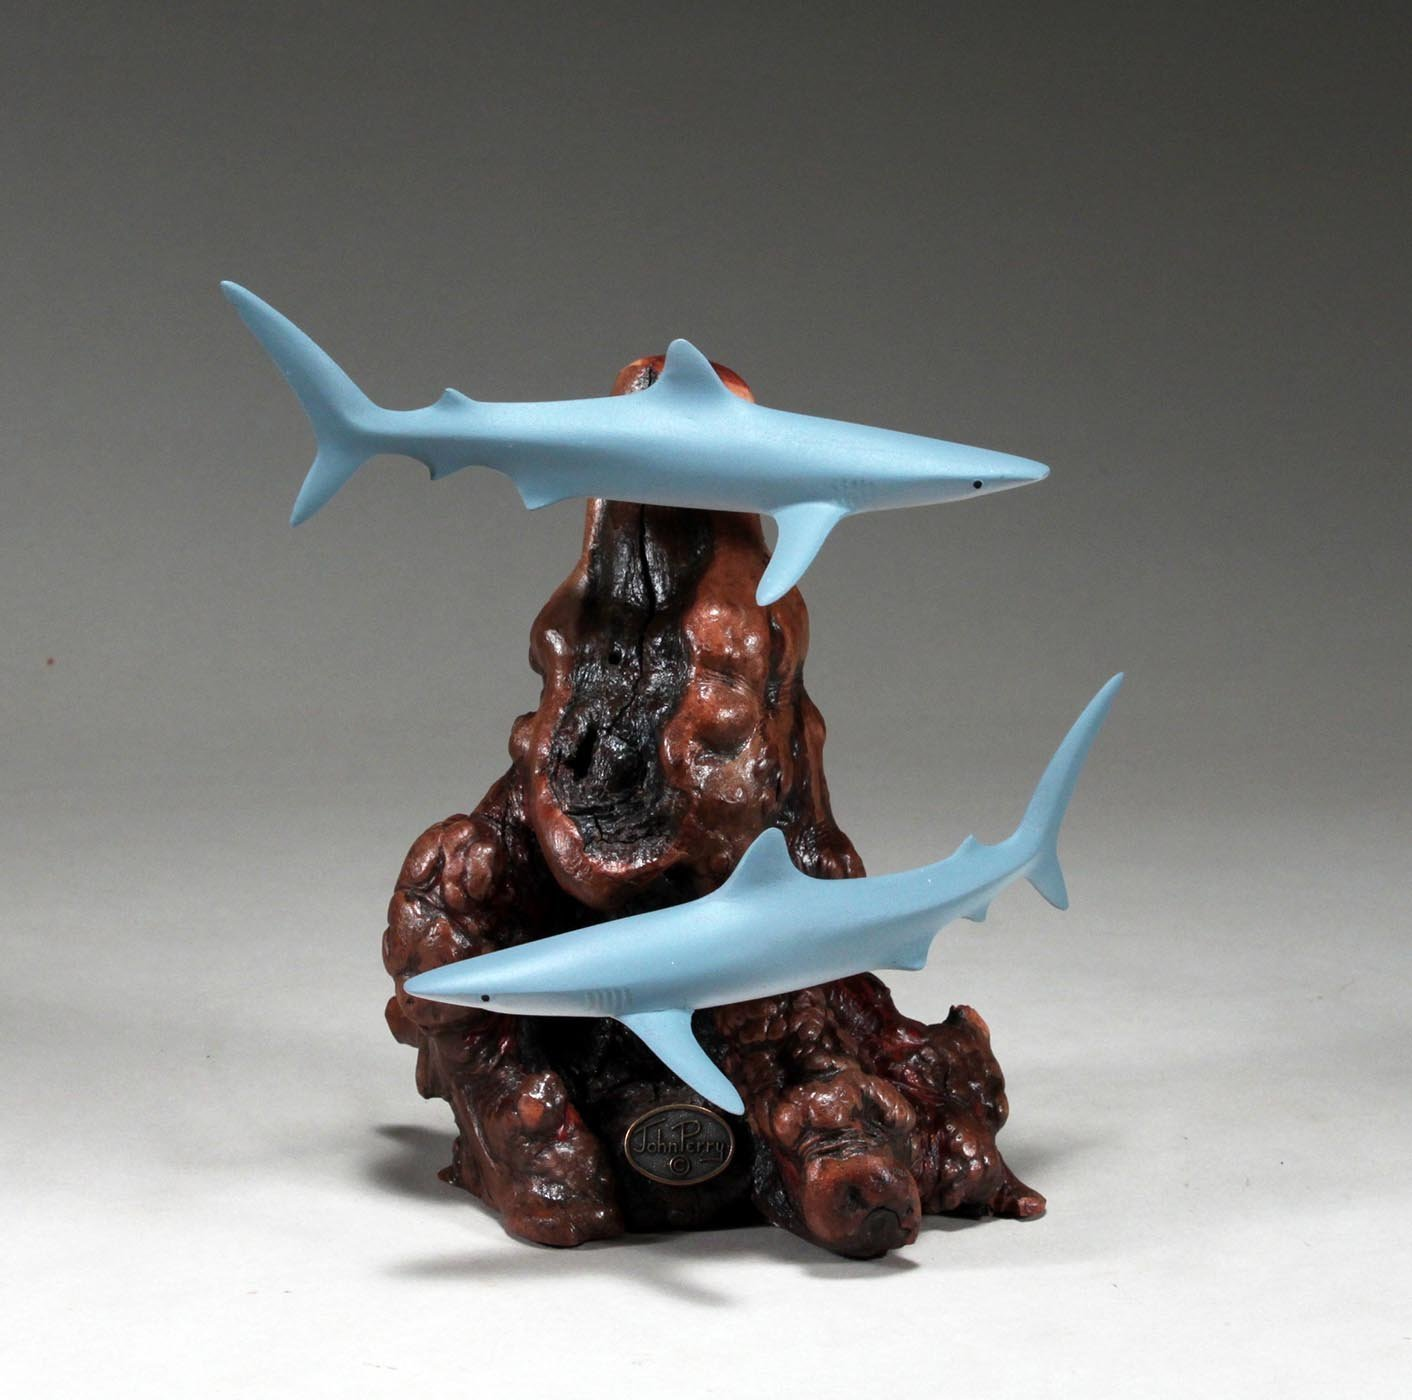 Blue Shark Duo Sculpture by John Perry 6 in long Airbrushed Statue Figurine